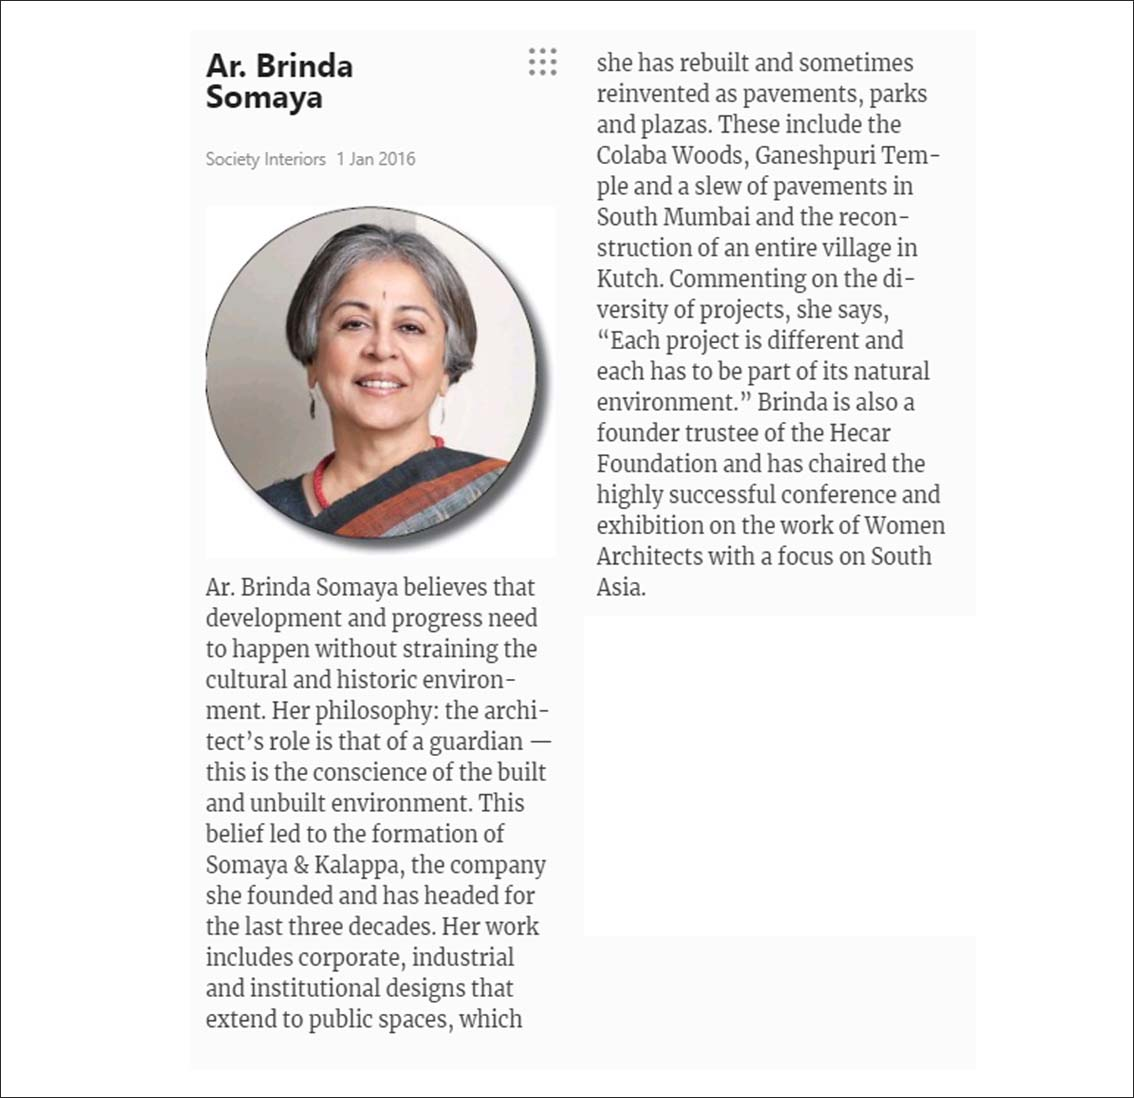 Ar. Brinda Somaya, Society Interiors - January 2016